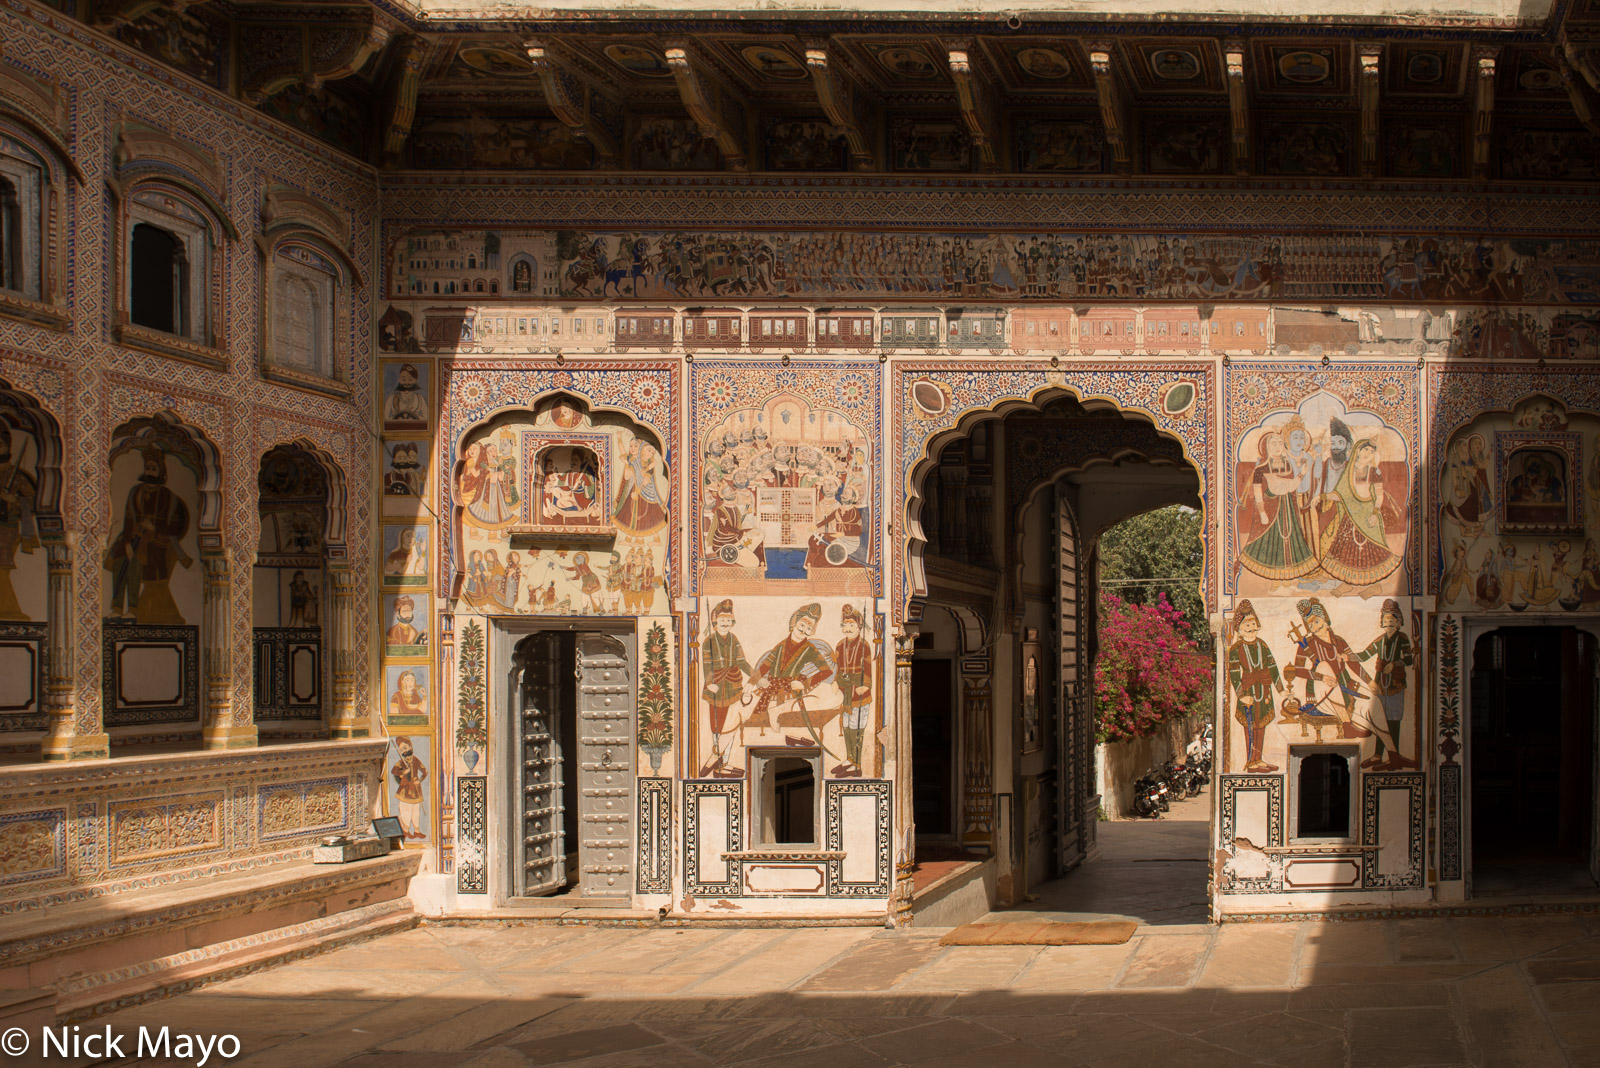 Courtyard, Gate, India, Mural, Rajasthan, photo